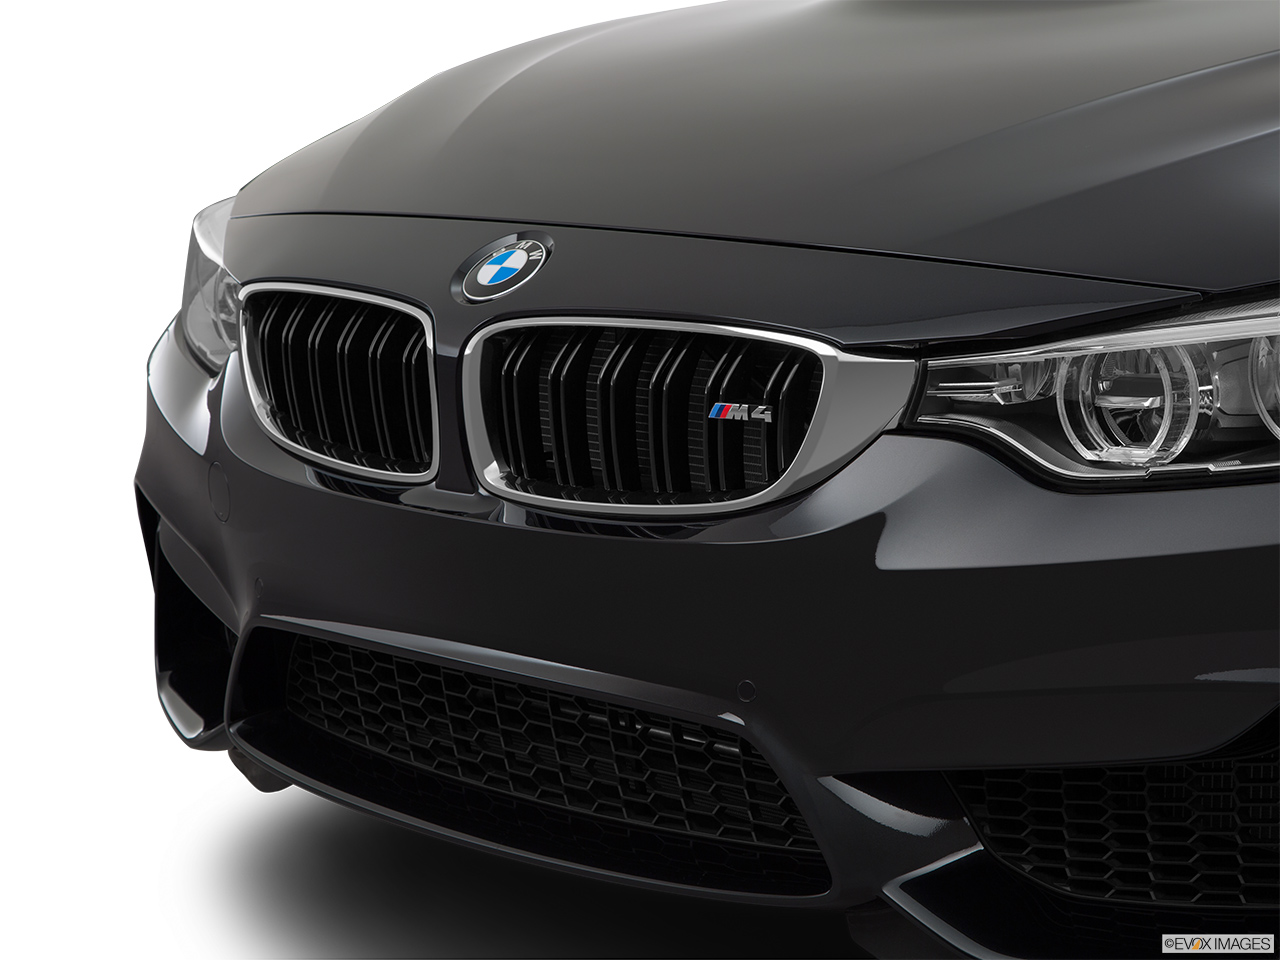 2015 Bmw M4 Coupe Close Up Of Grill